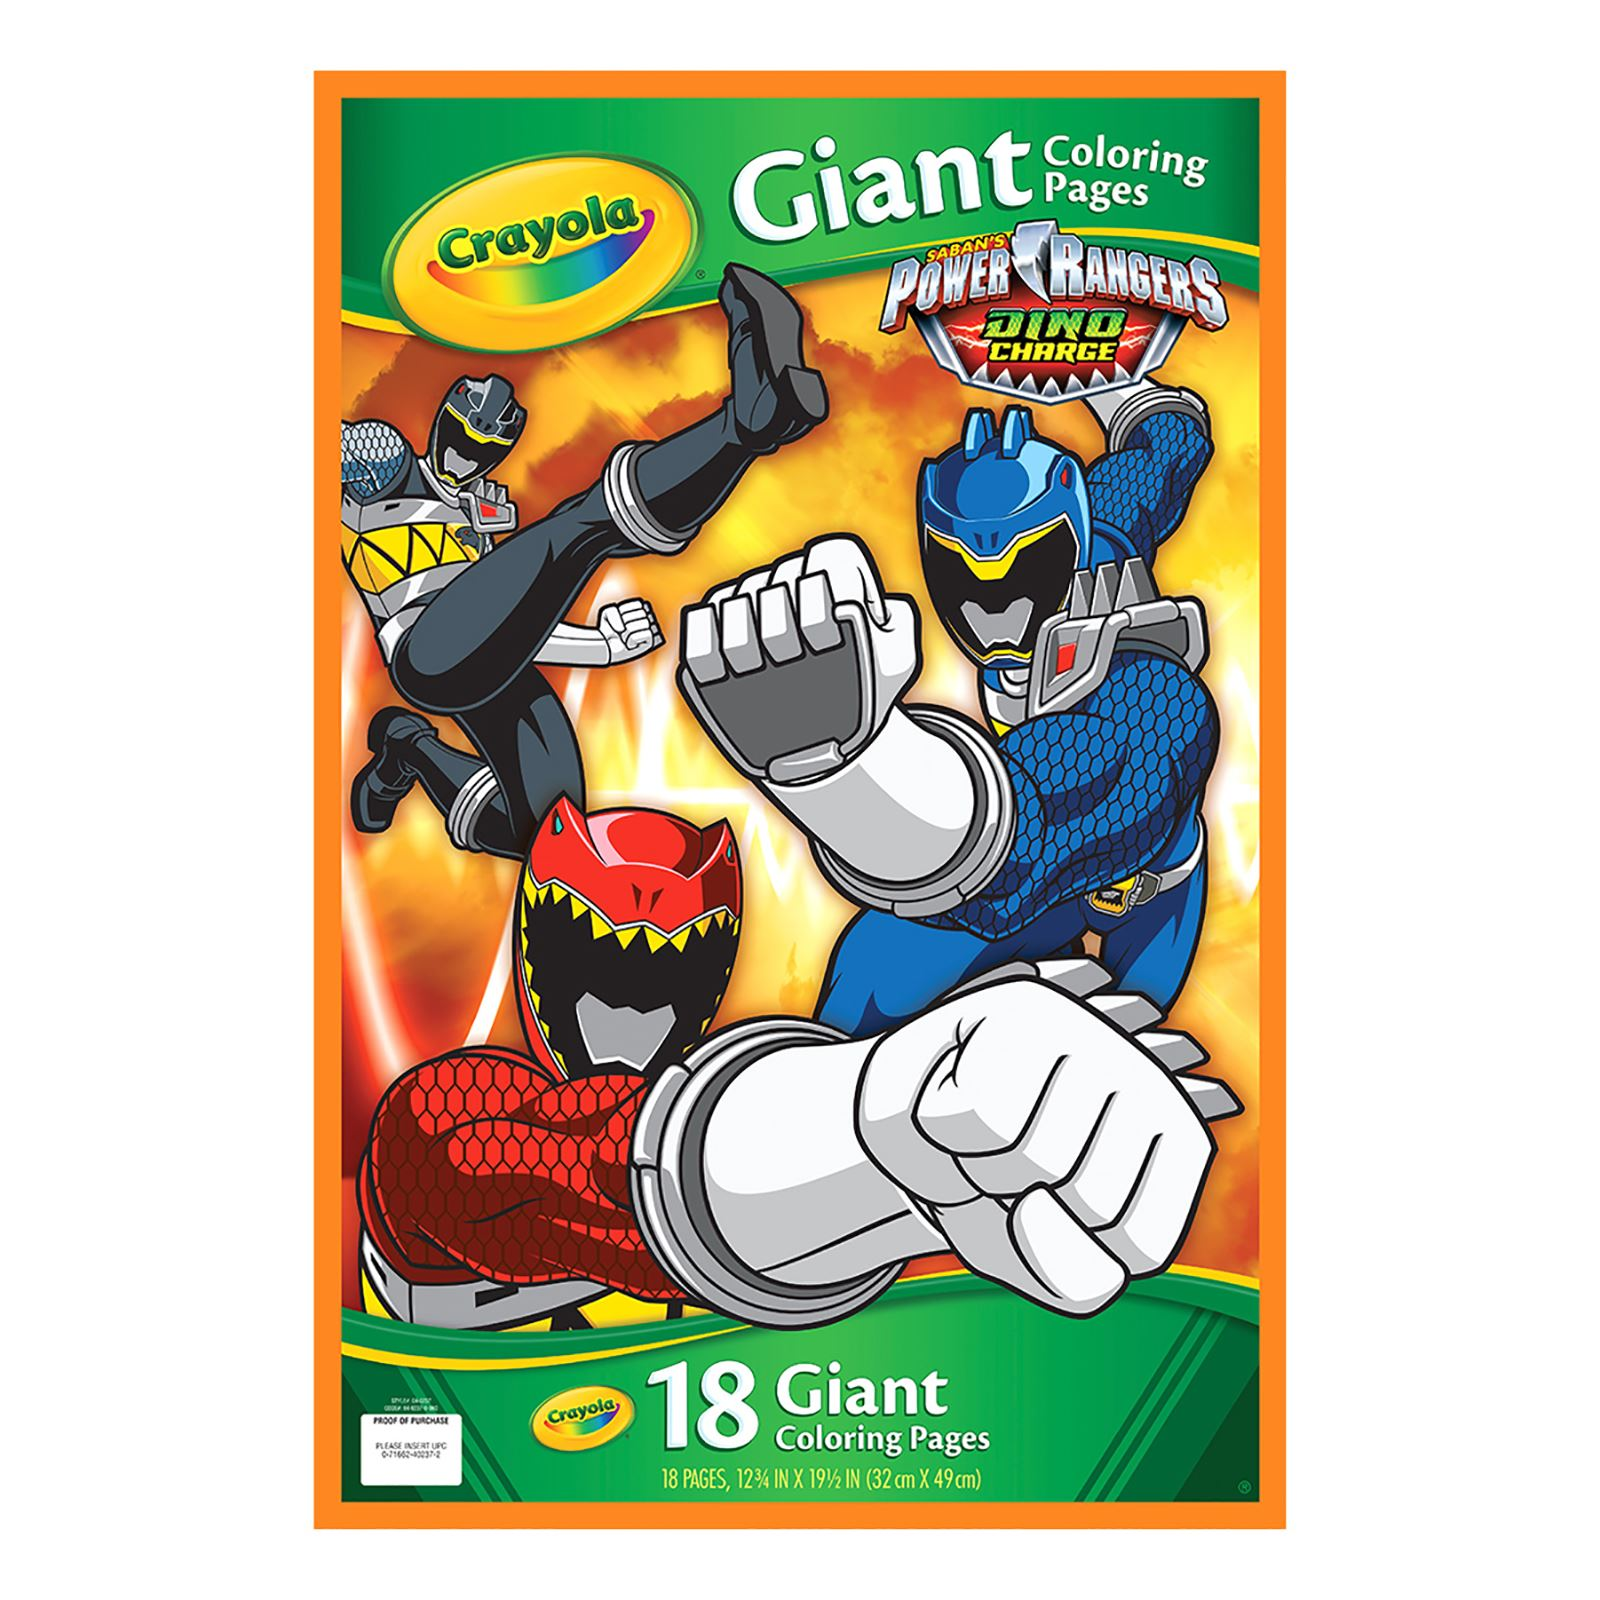 crayola 49cm giant colouring pages avengers power rangers princess